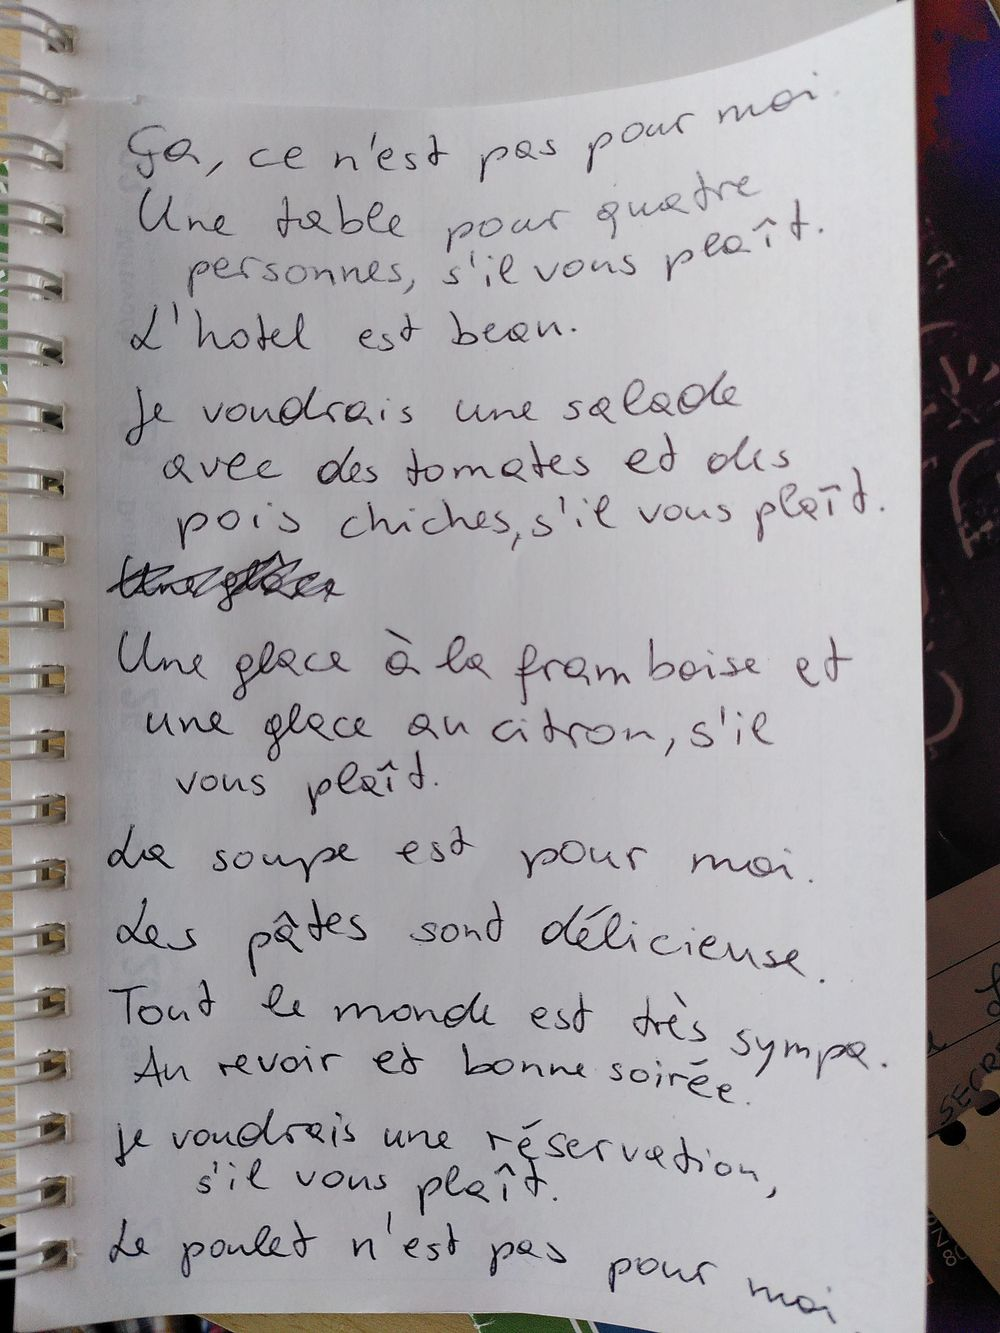 Mes phrases francaises - image 1 - student project